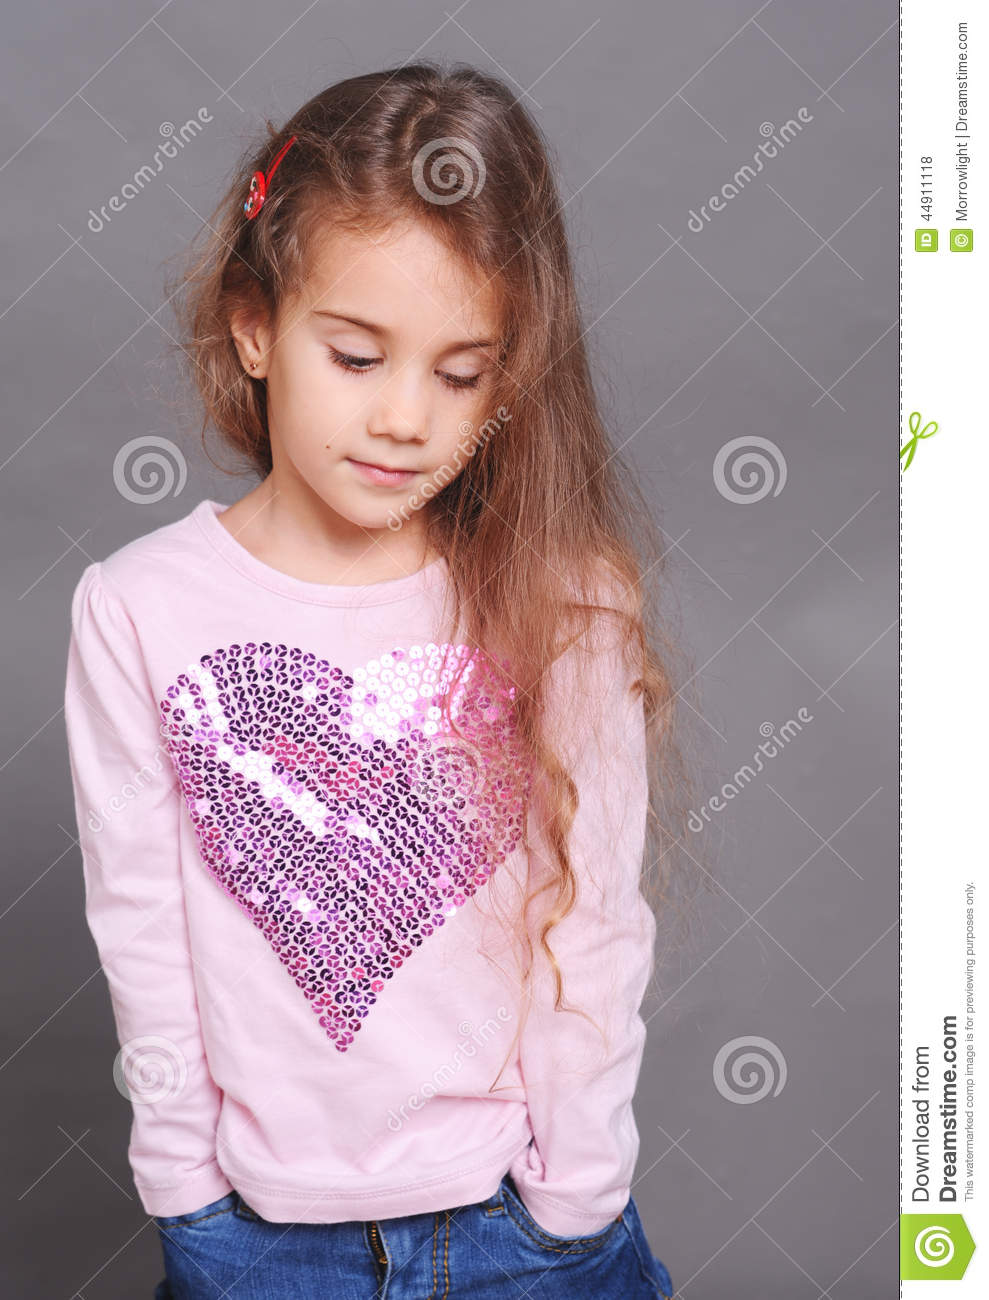 cute baby girl posing on gray in room stock photo - image of fashion